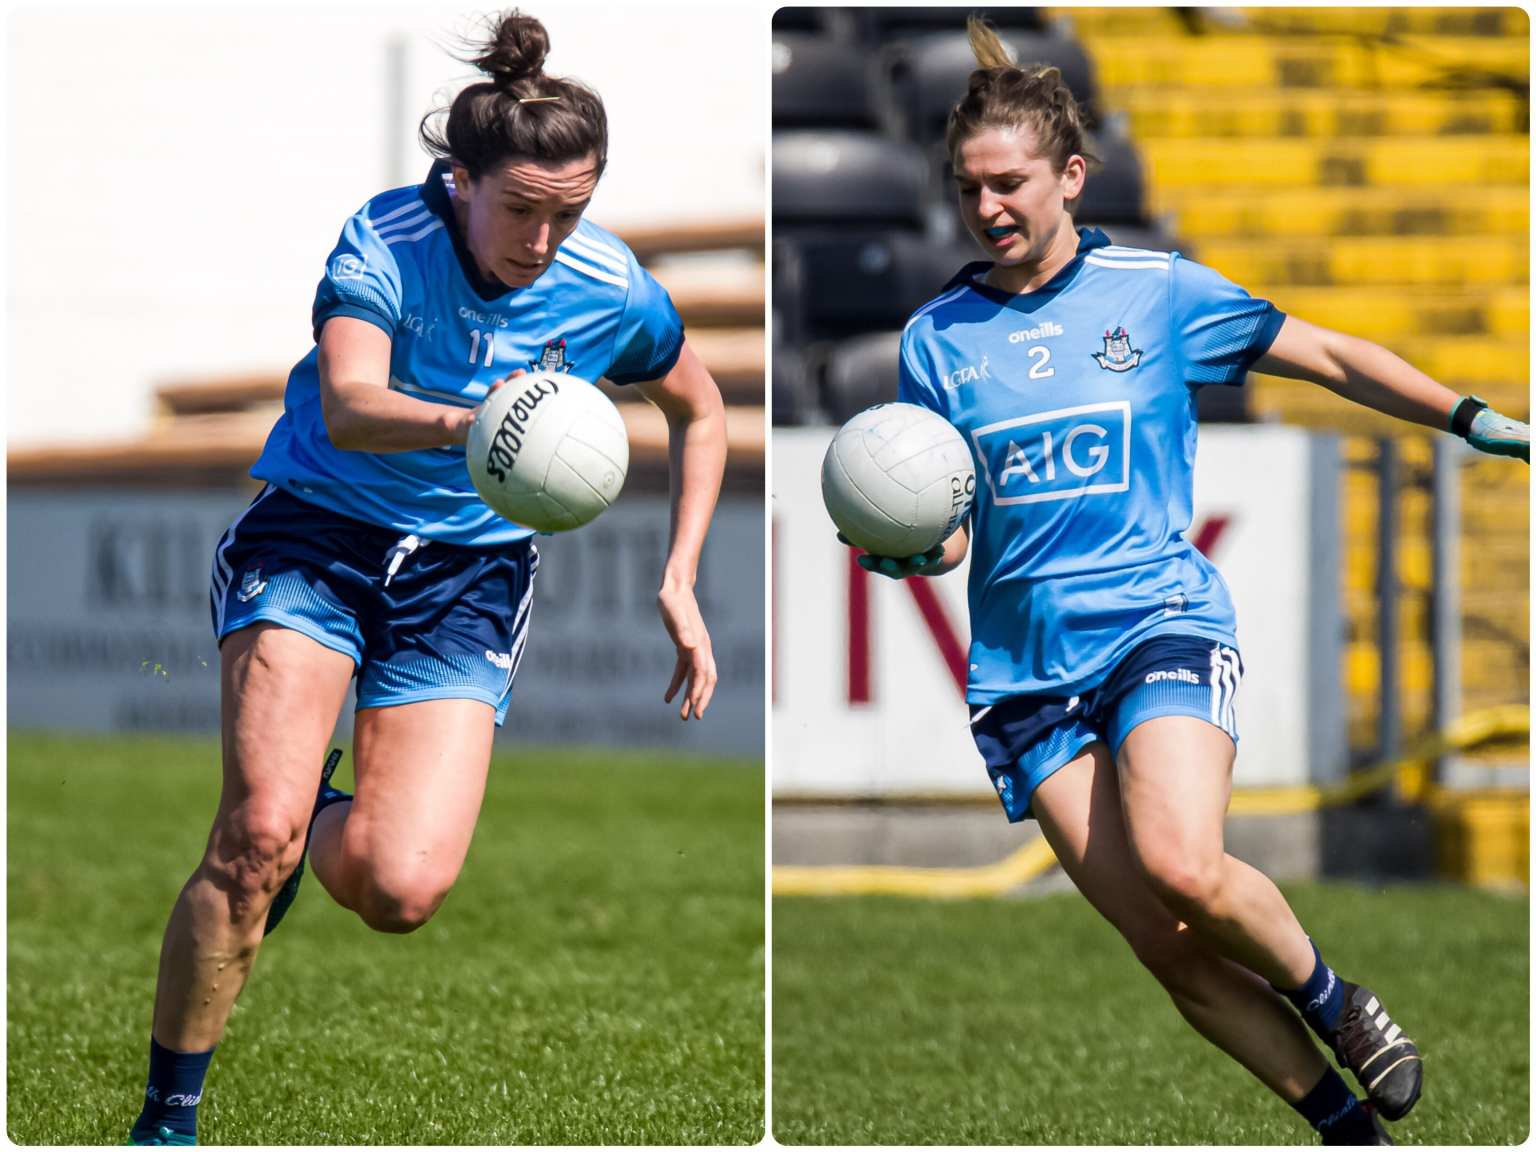 Two Dublin Ladies Footballers in action during the Lidl Ladies National Football League Semi Final, both players, Niamh McEvoy and Martha Byrne were Named On the 2019 Lidl Ladies National Football League Division 1 team